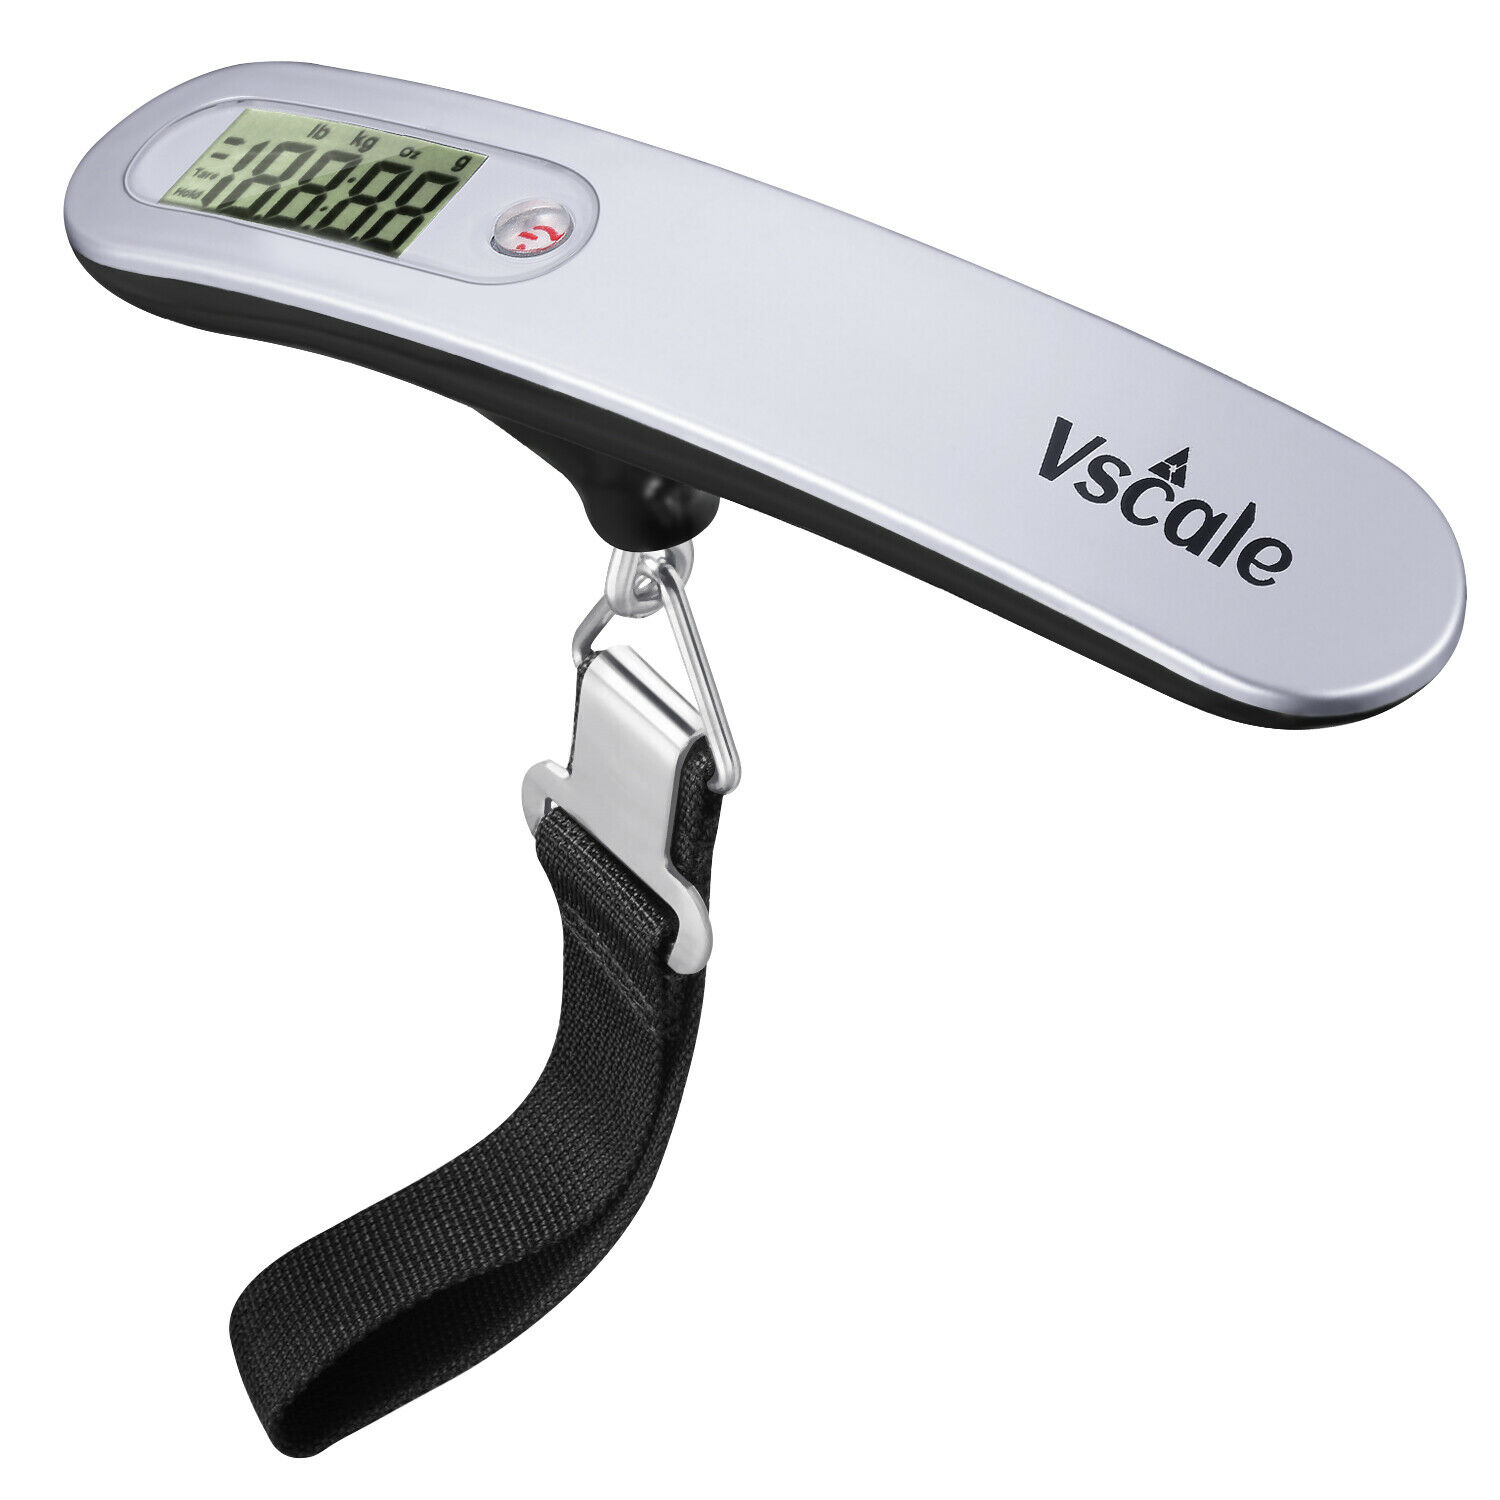 Vscale® Luggage Scale [XT500] Digital Portable Travel Weight Scale 110lb / 50Kg Luggage Accessories